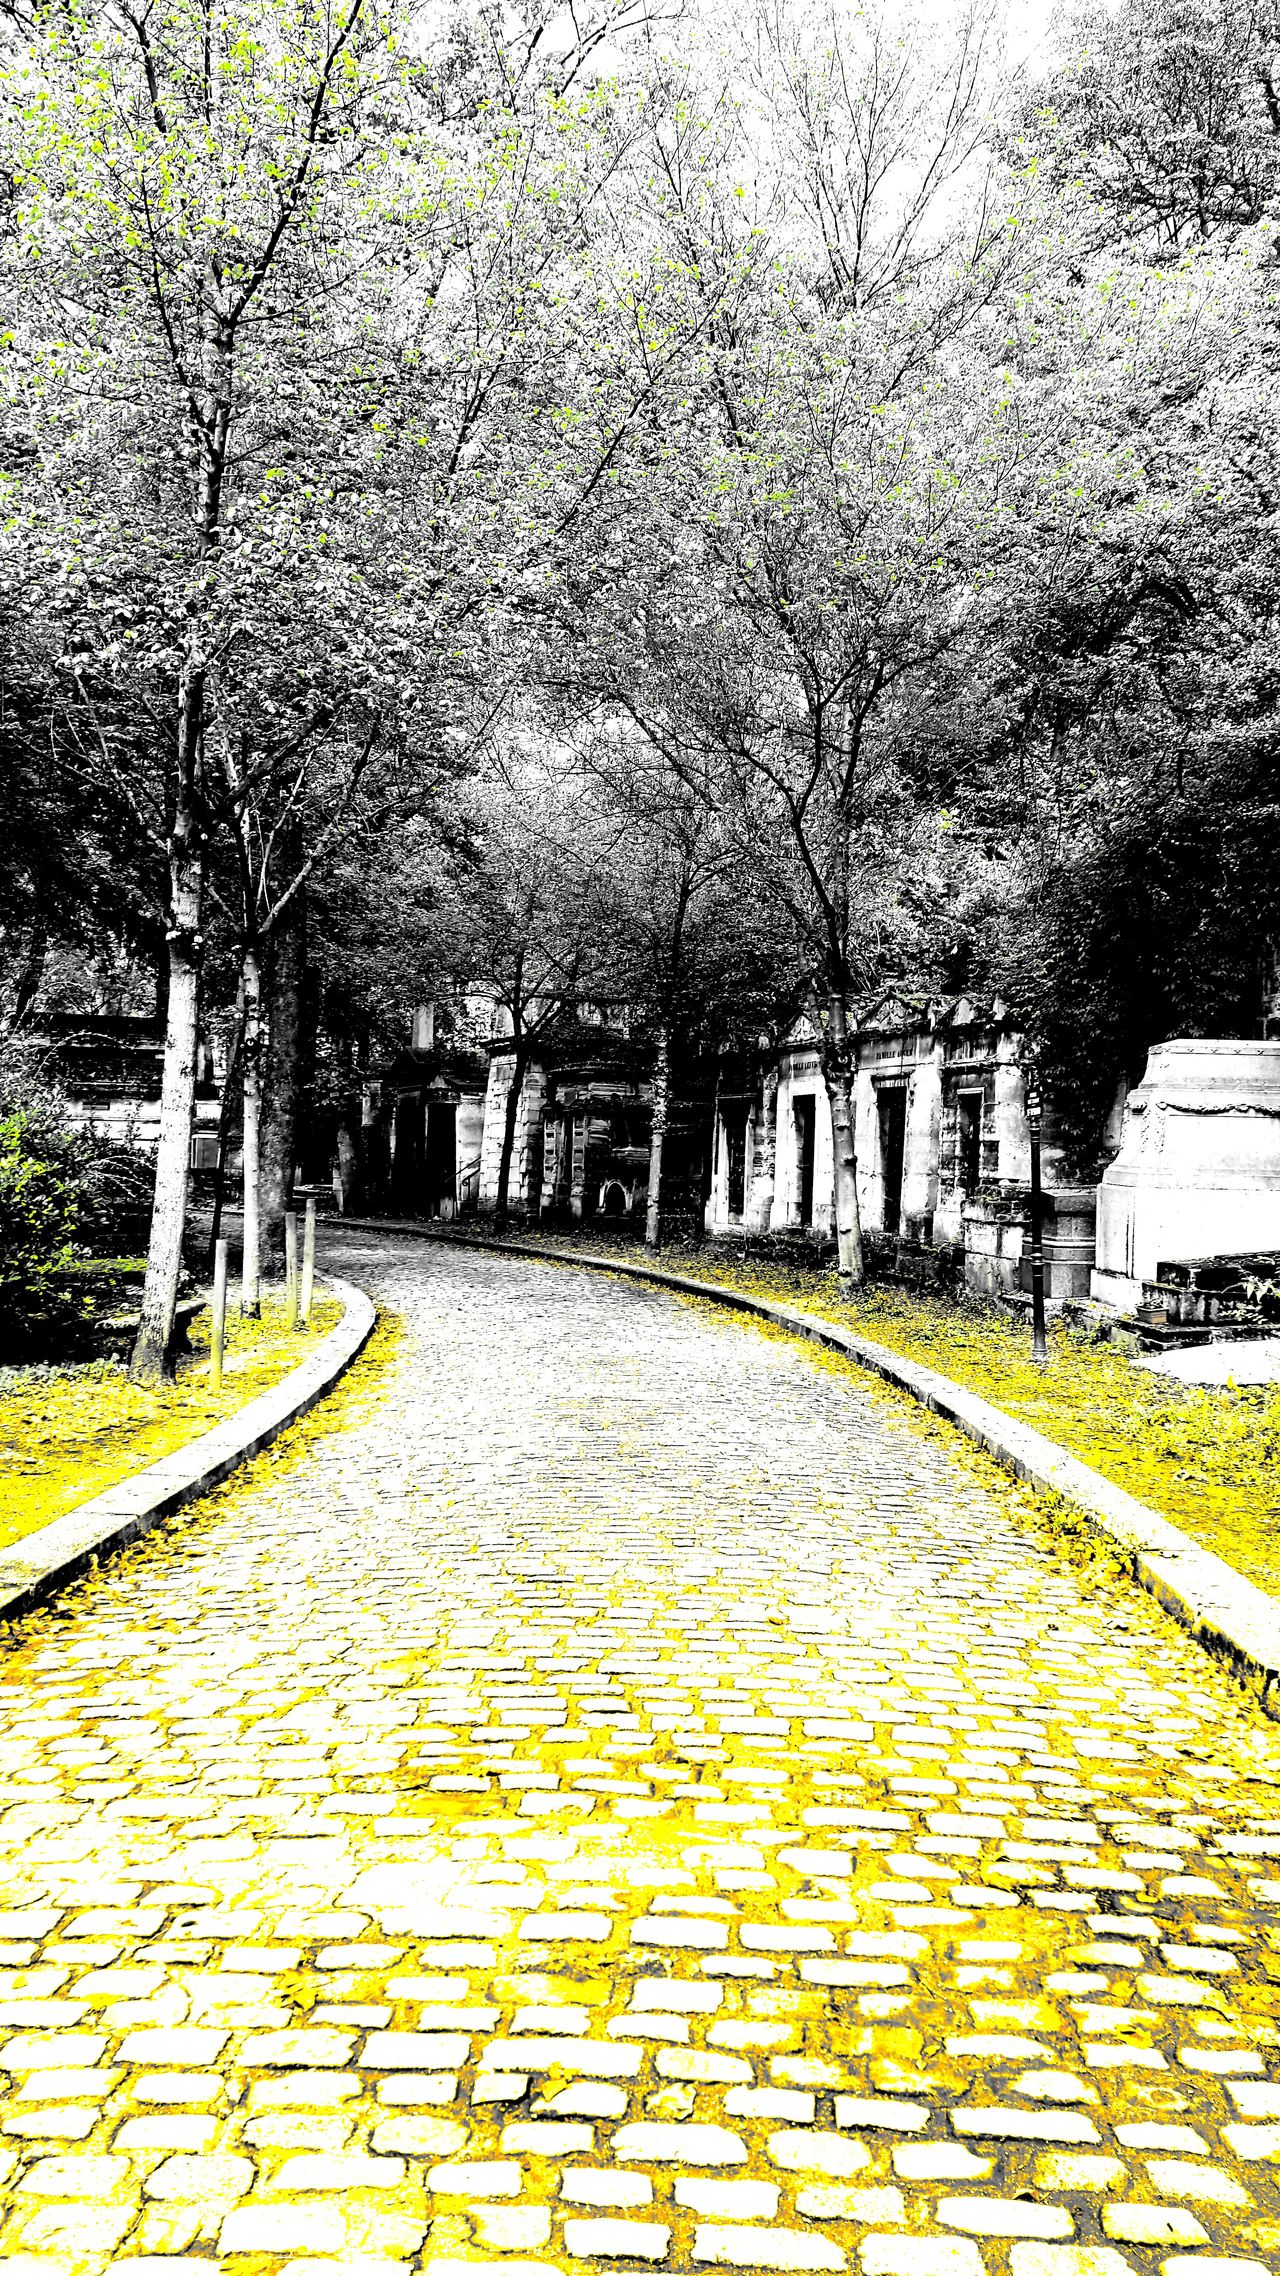 Check This Out Cobblestone Fall In Paris Paris Scene Pattern Père Lachaise Père Lachaise Cemetery Stone Path Tombstone Traveling Tree